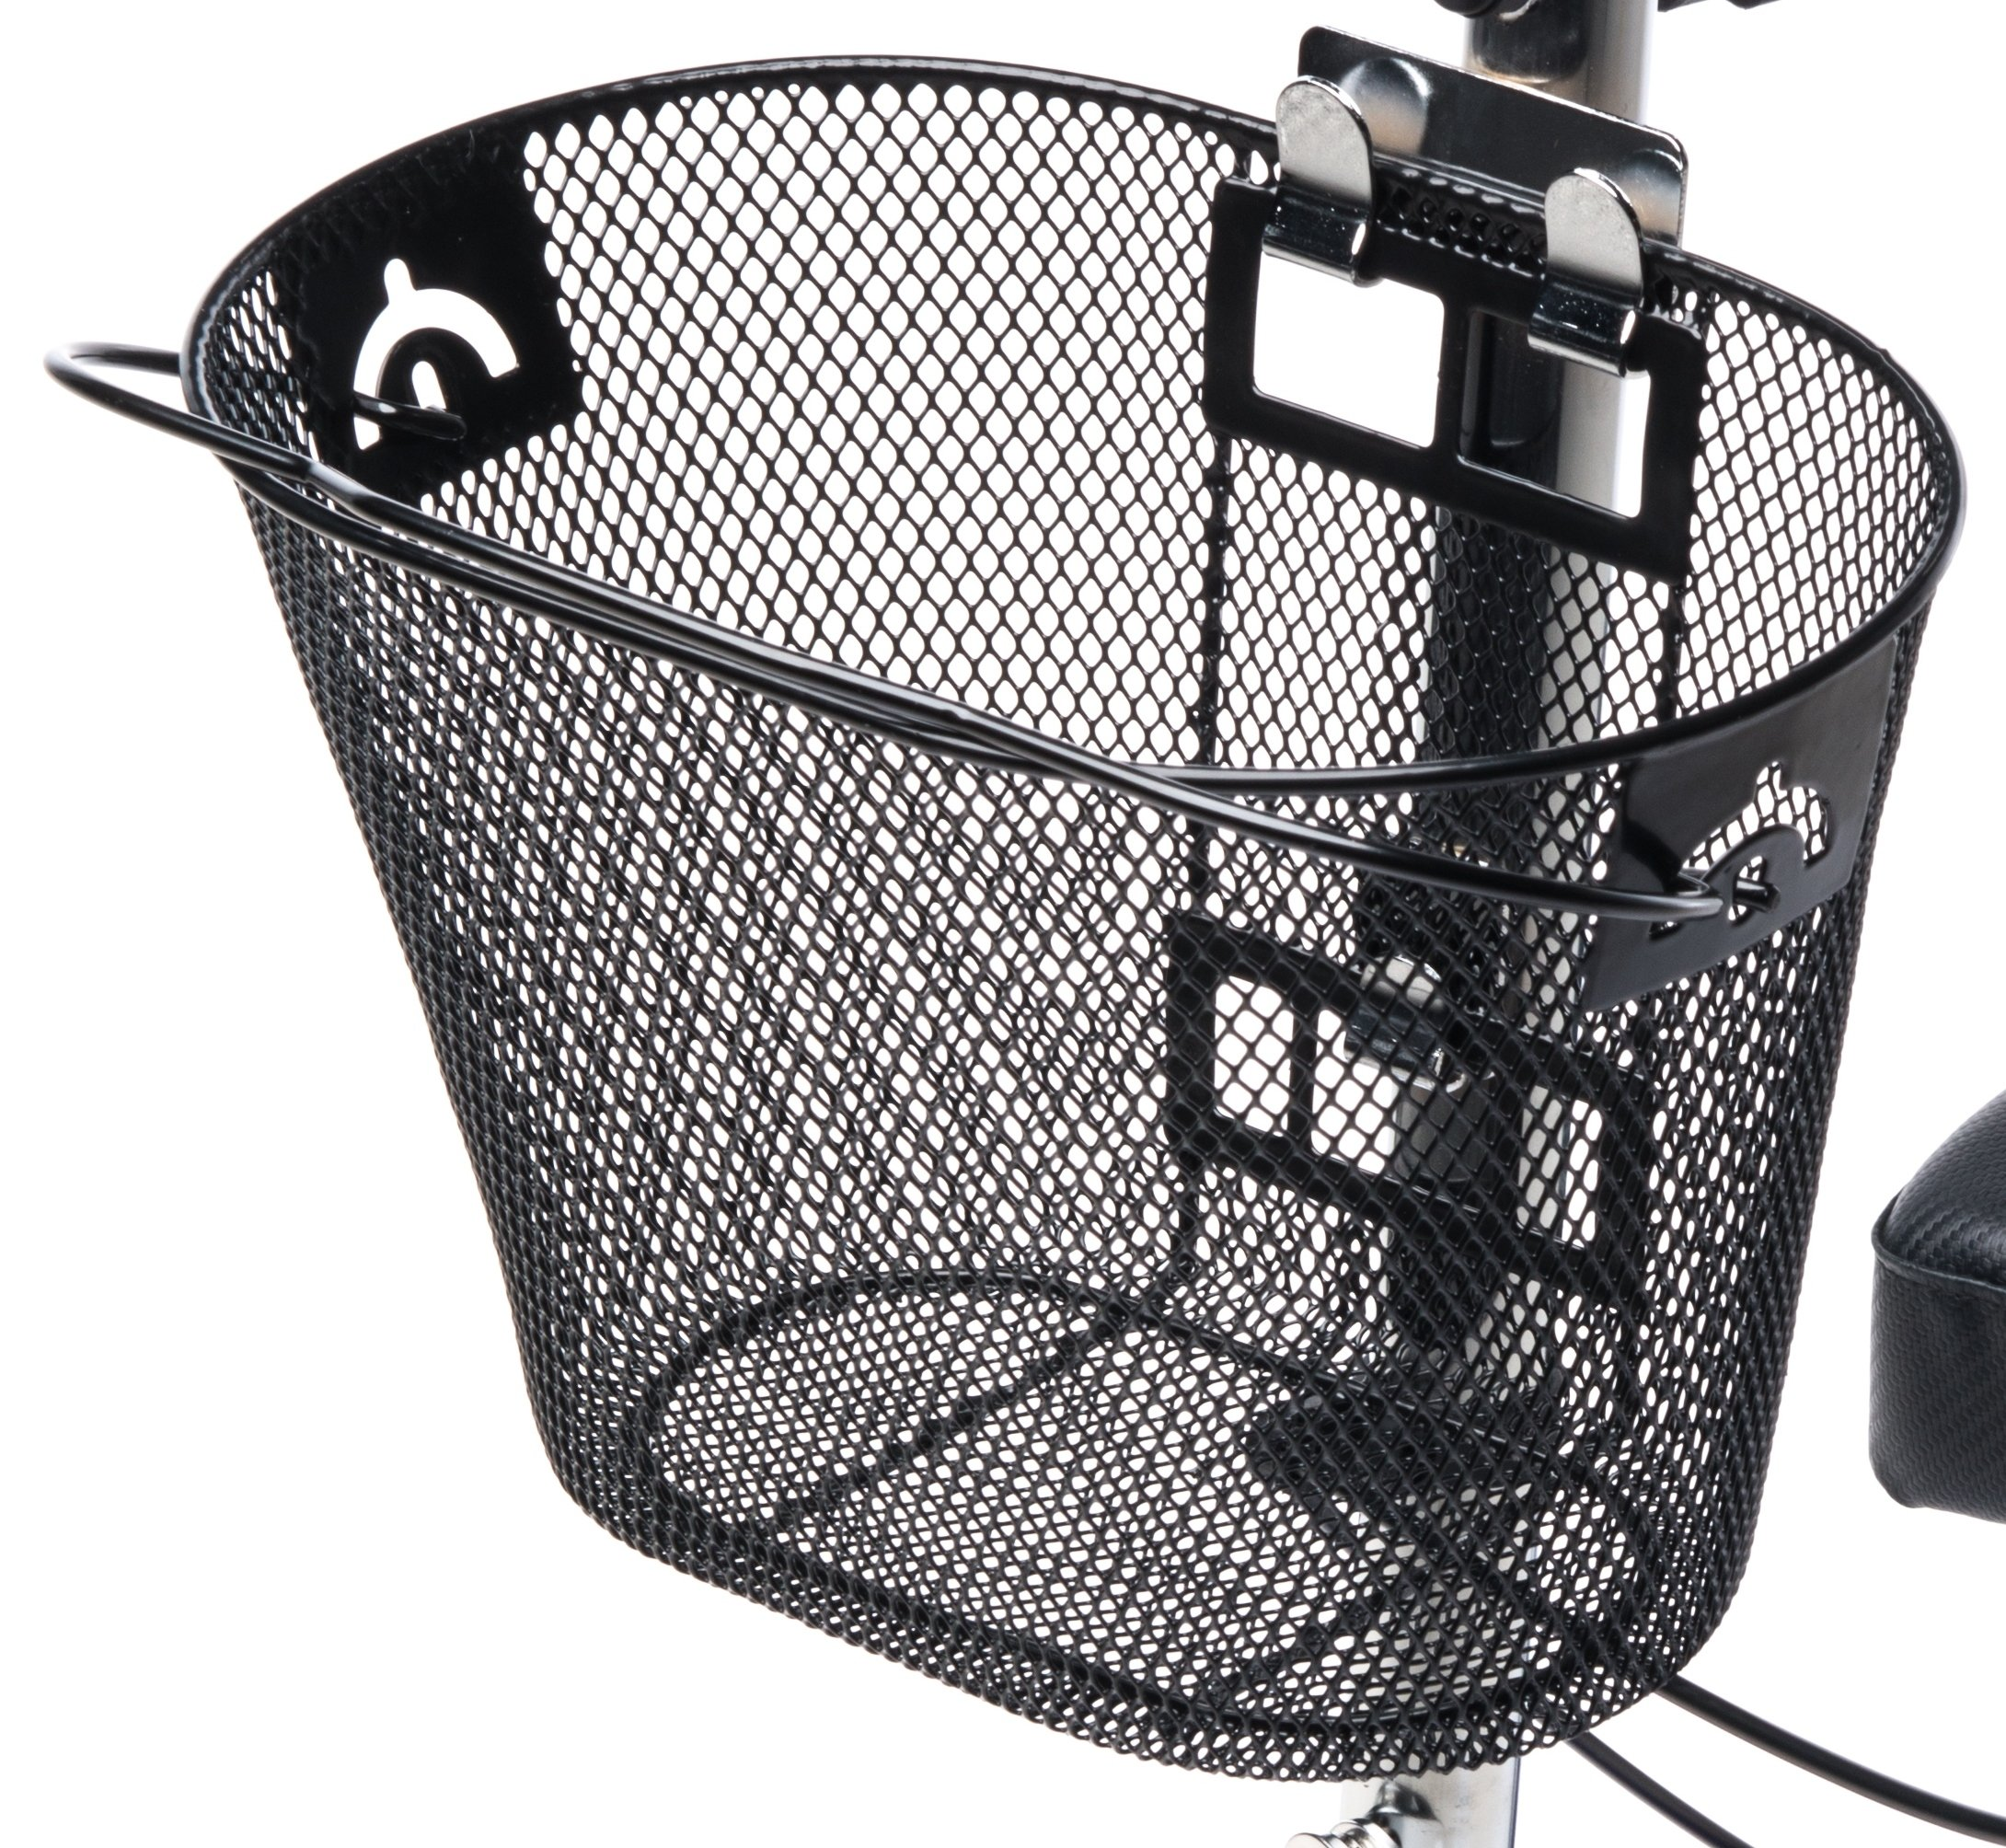 Knee Walker Basket Accessory - Replacement Part with Quick Release and Convenient Handle - INCLUDES ATTACHMENT BRACKET - Compatible with Most Knee Scooters